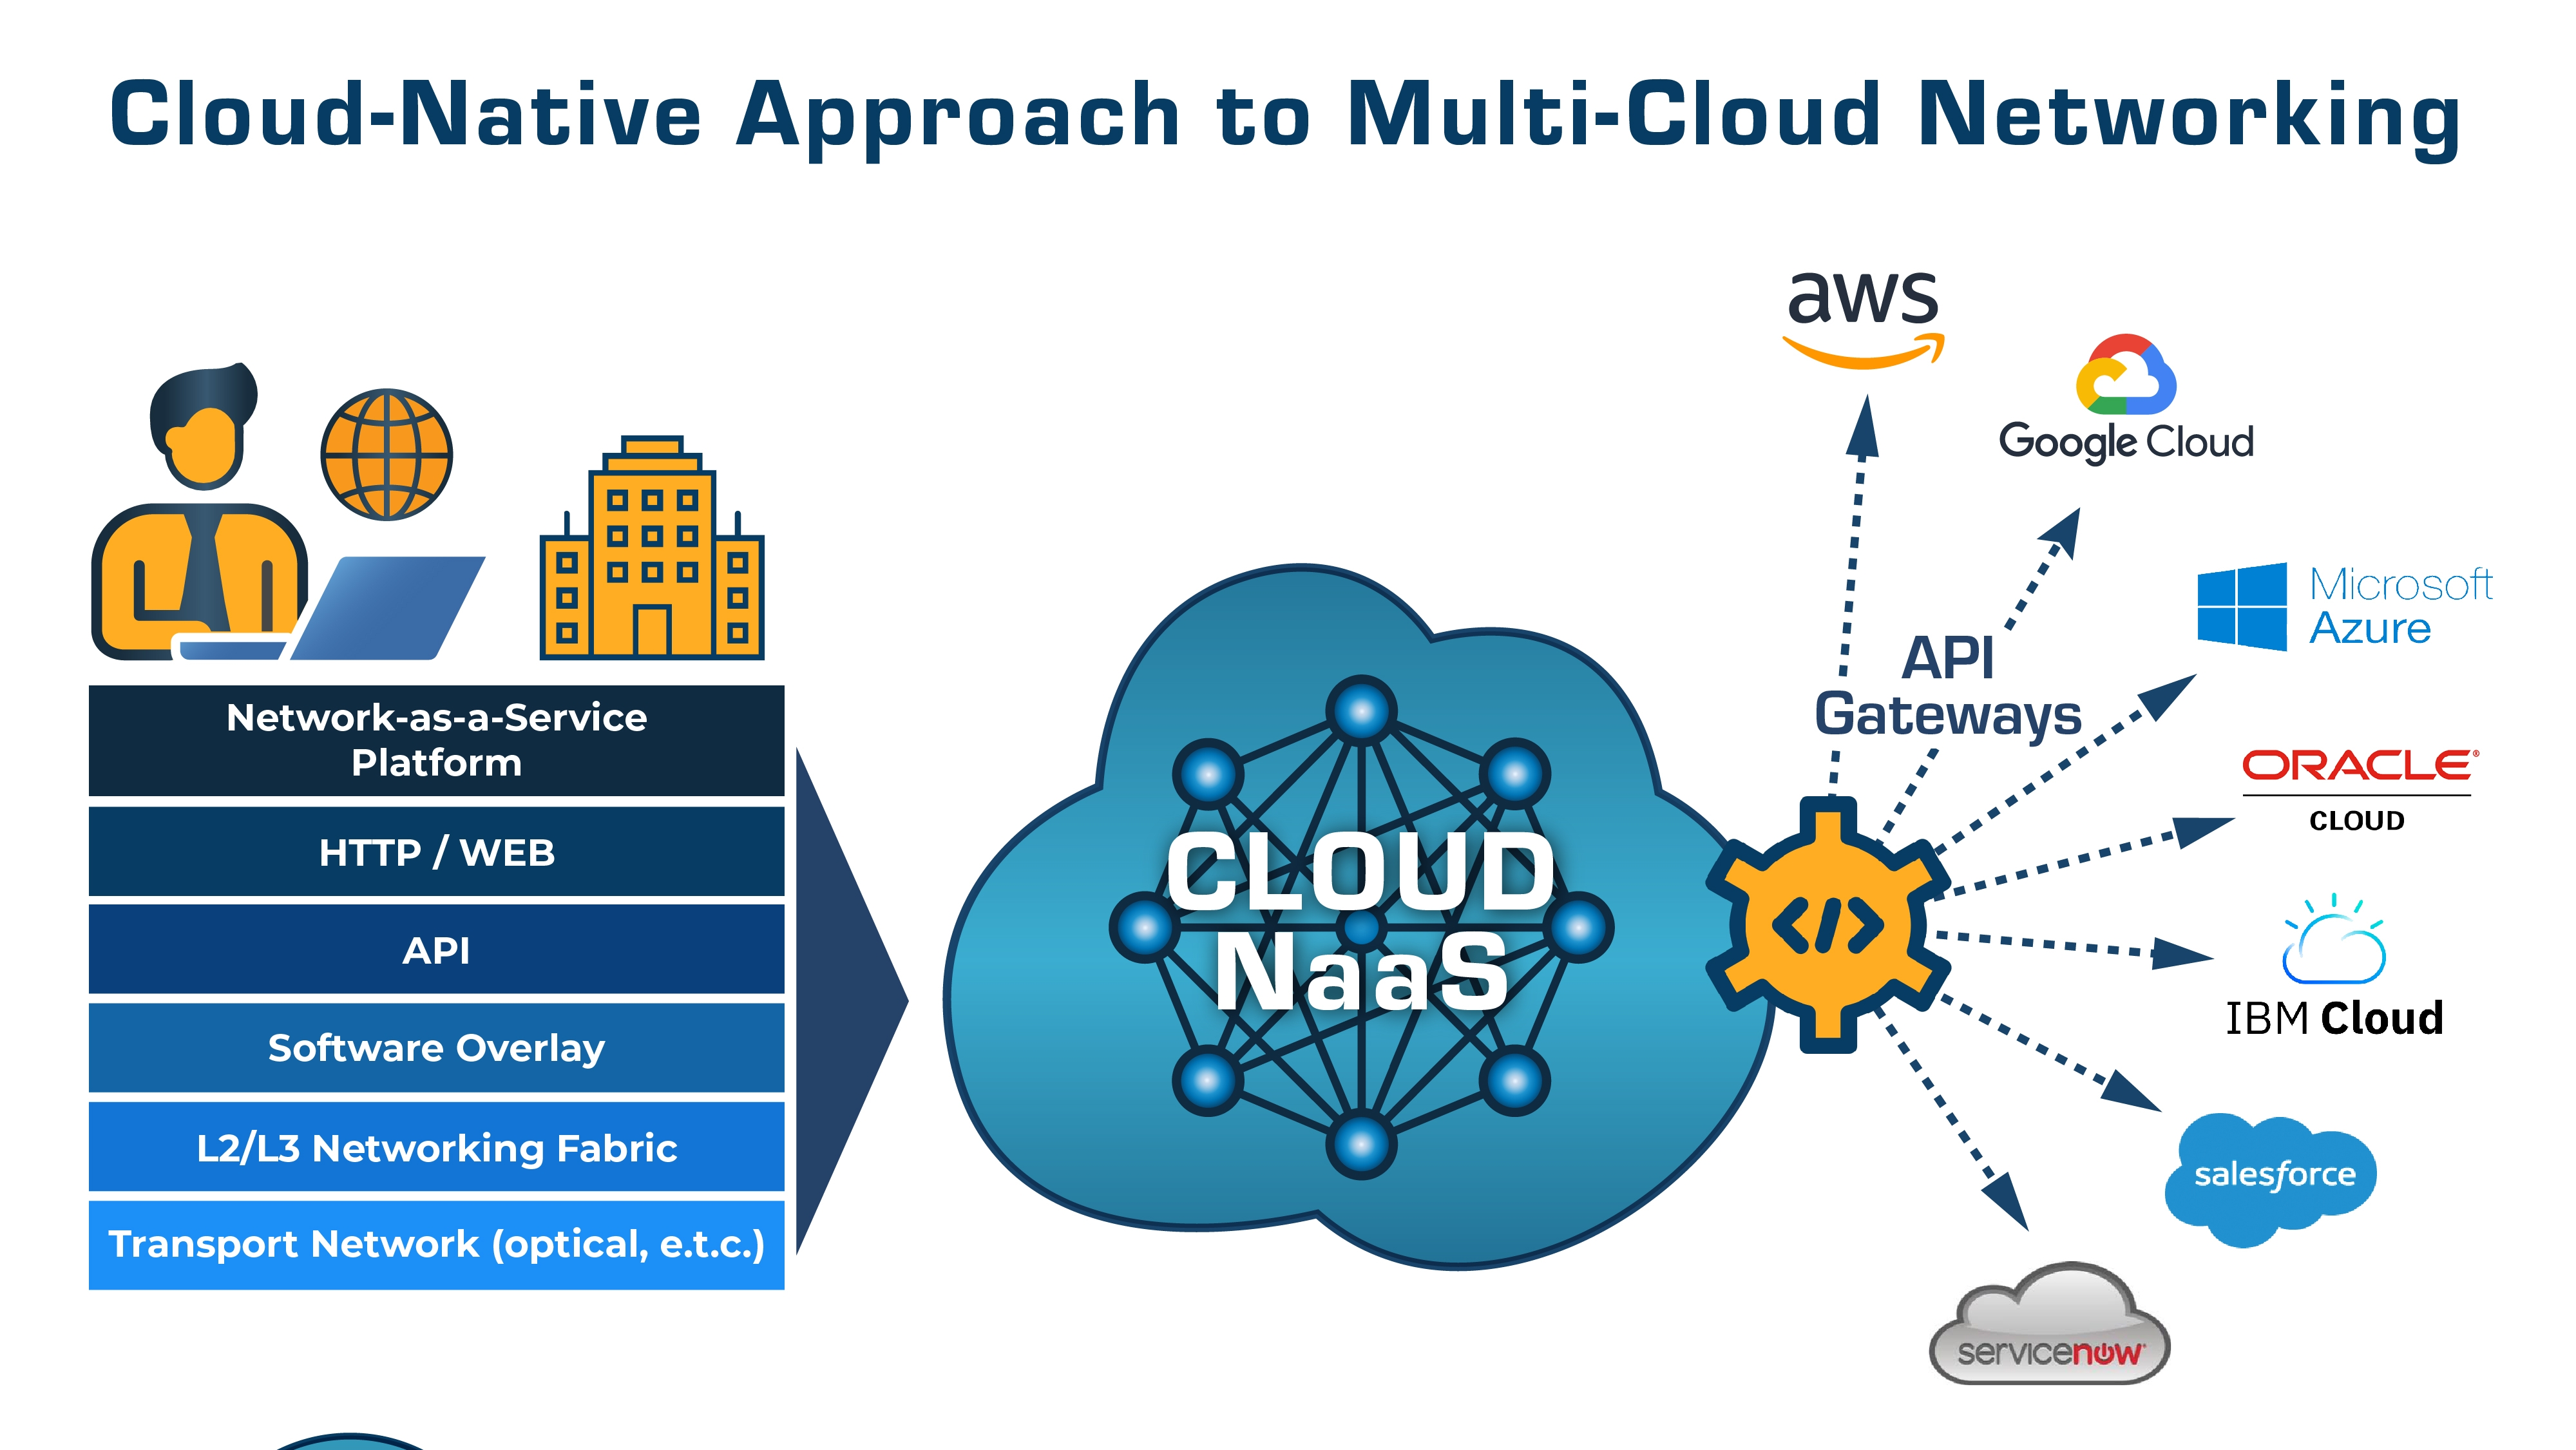 Futuriom Cloud Native Approach to Multi Cloud Networking V 2